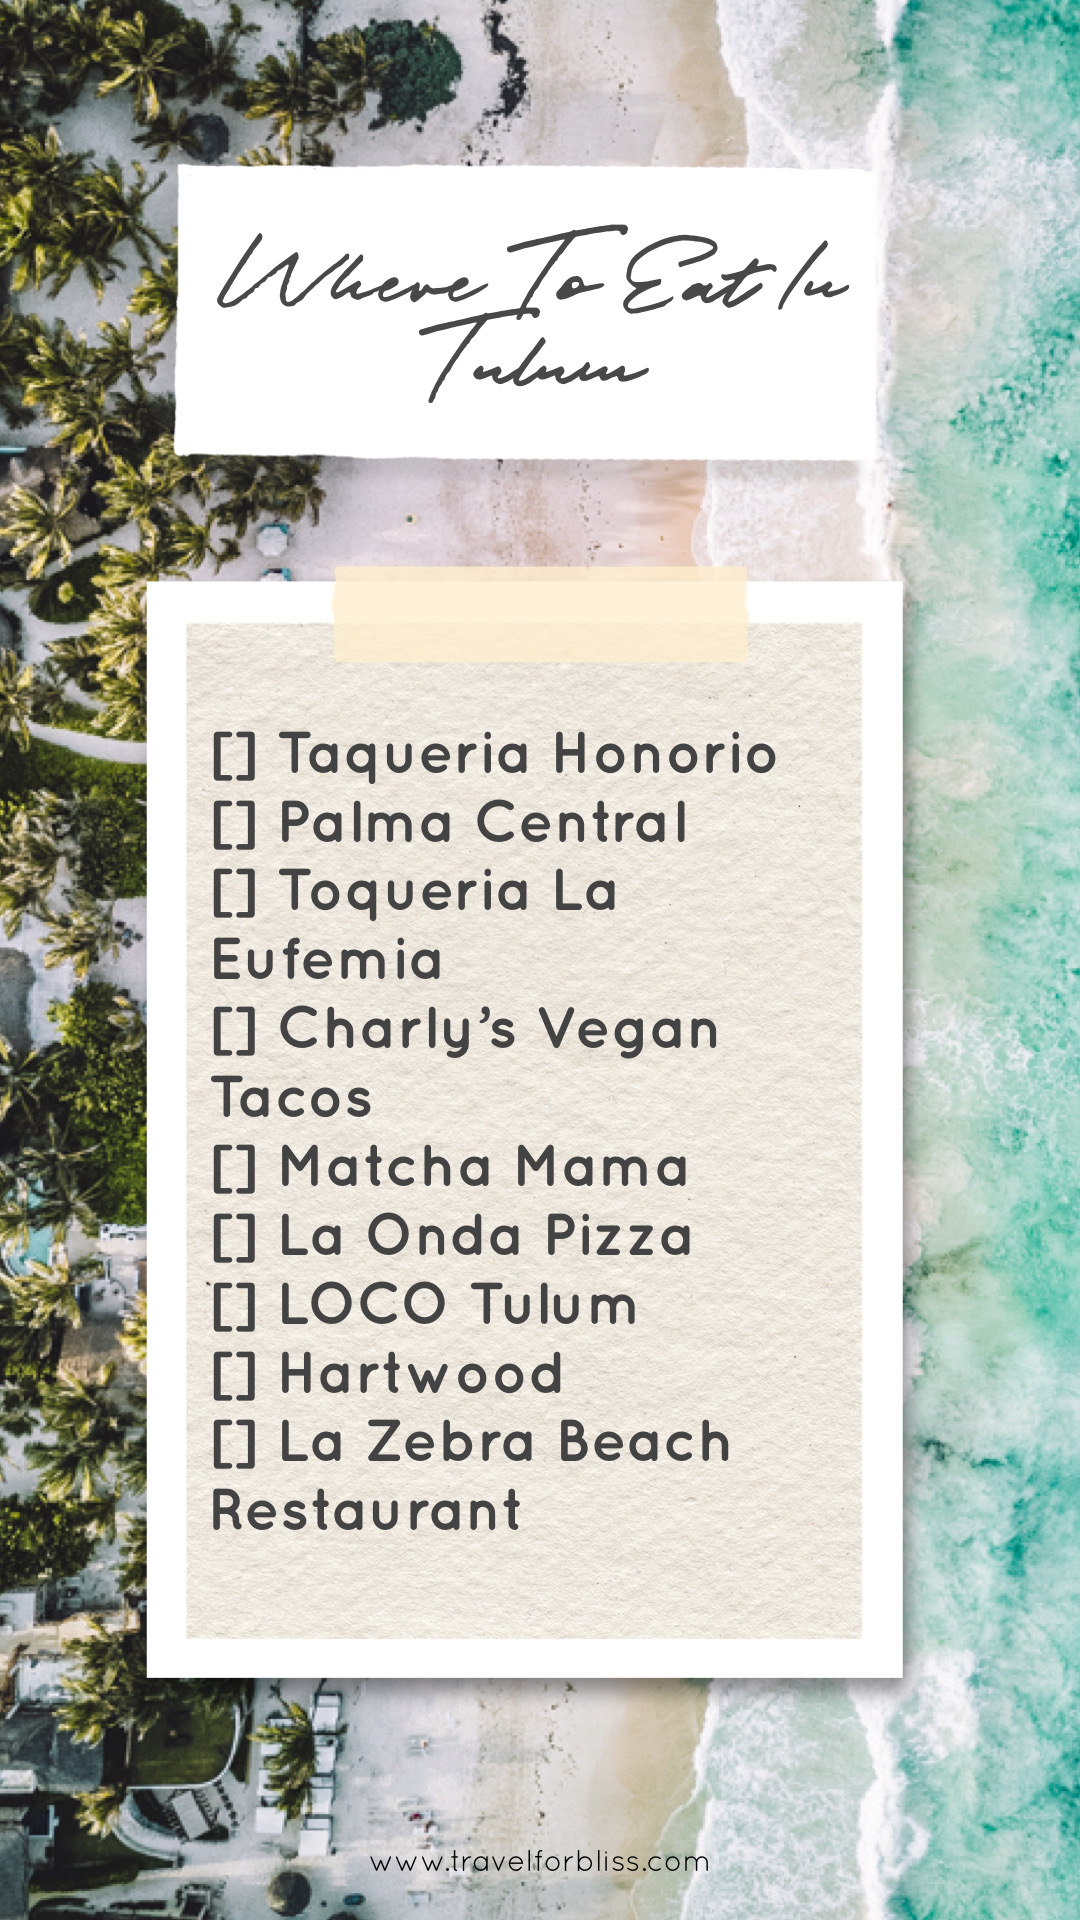 Travel Guide for where to eat in Tulum. Discover a list of the best restaurants in Tulum